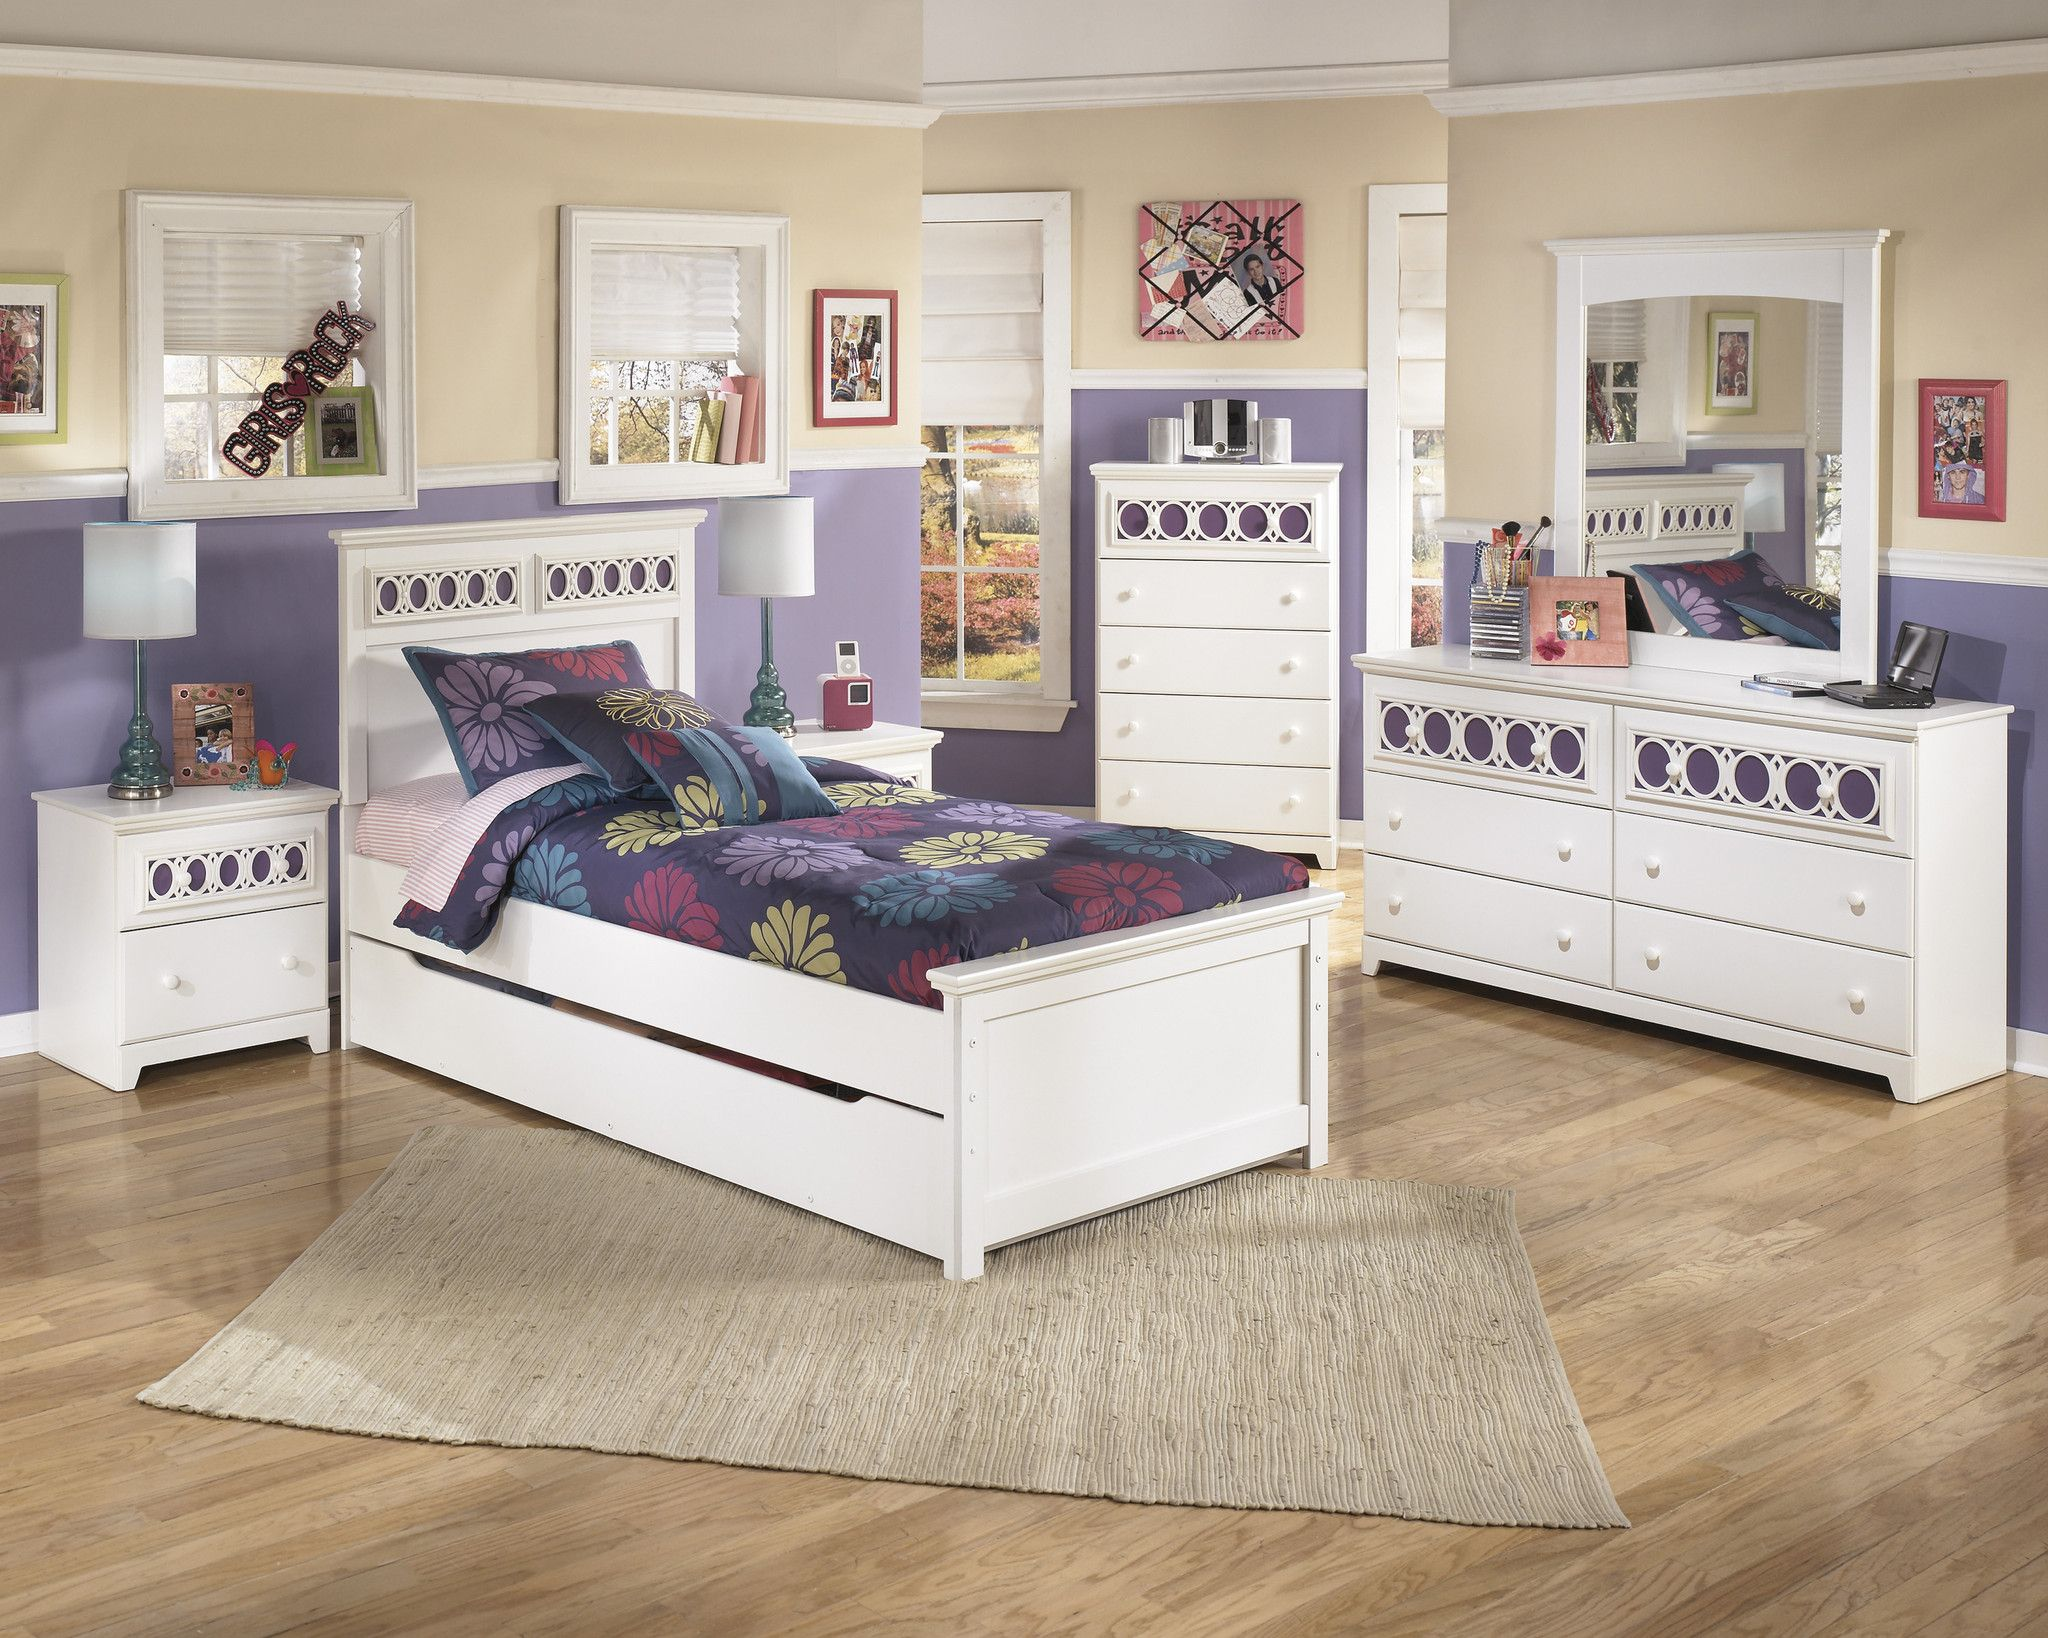 Zayley Storage Bedroom Group Ashley bedroom furniture